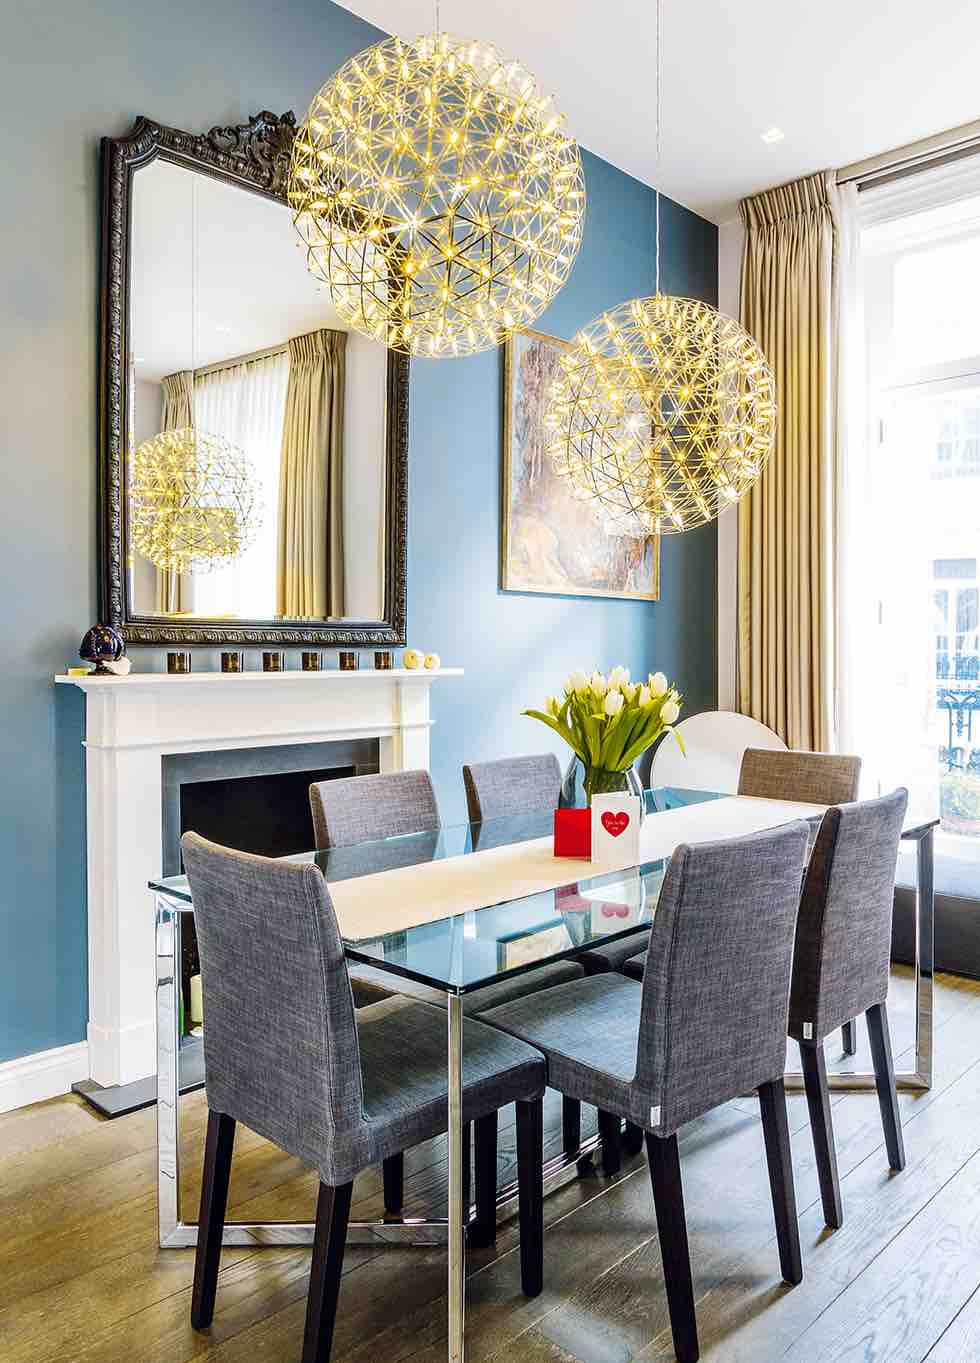 Small london flat dining area